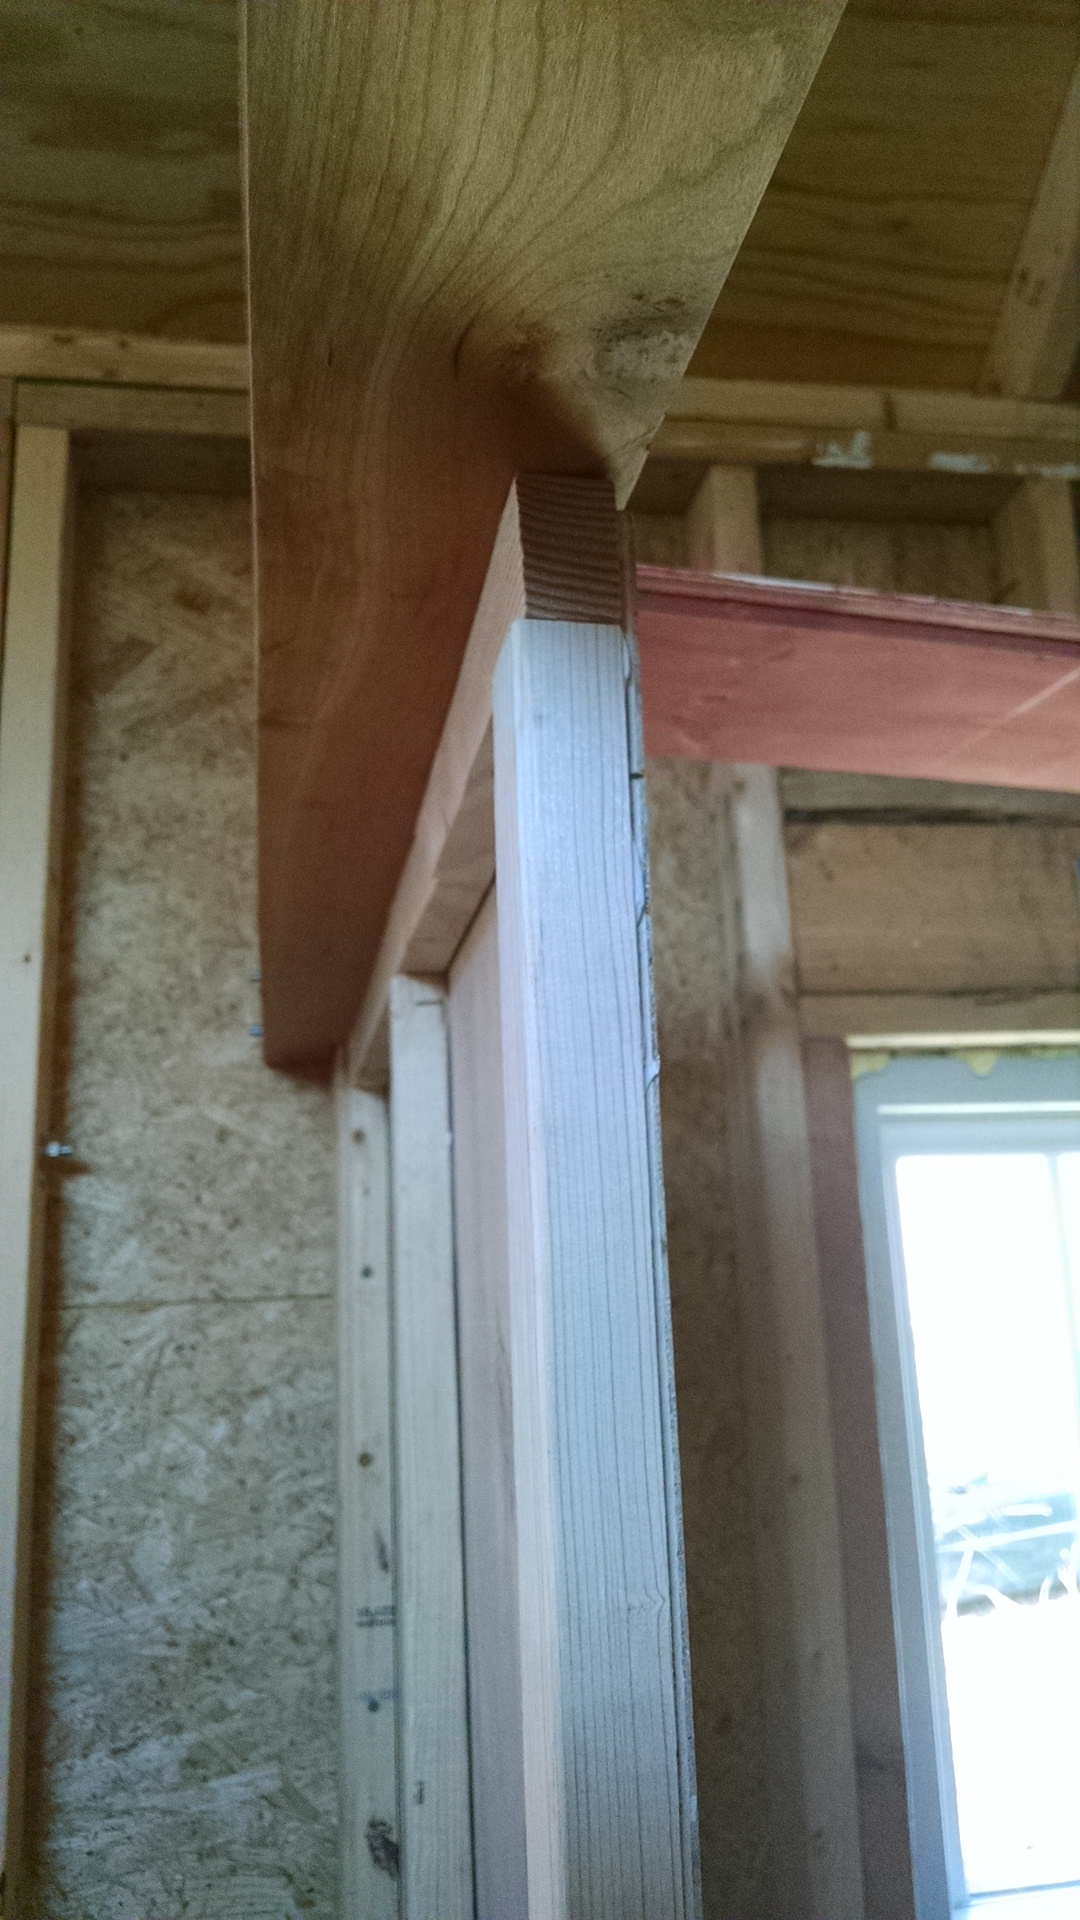 the thin bathroom wall, showing how it's offset under the beam to make room for a sliding door